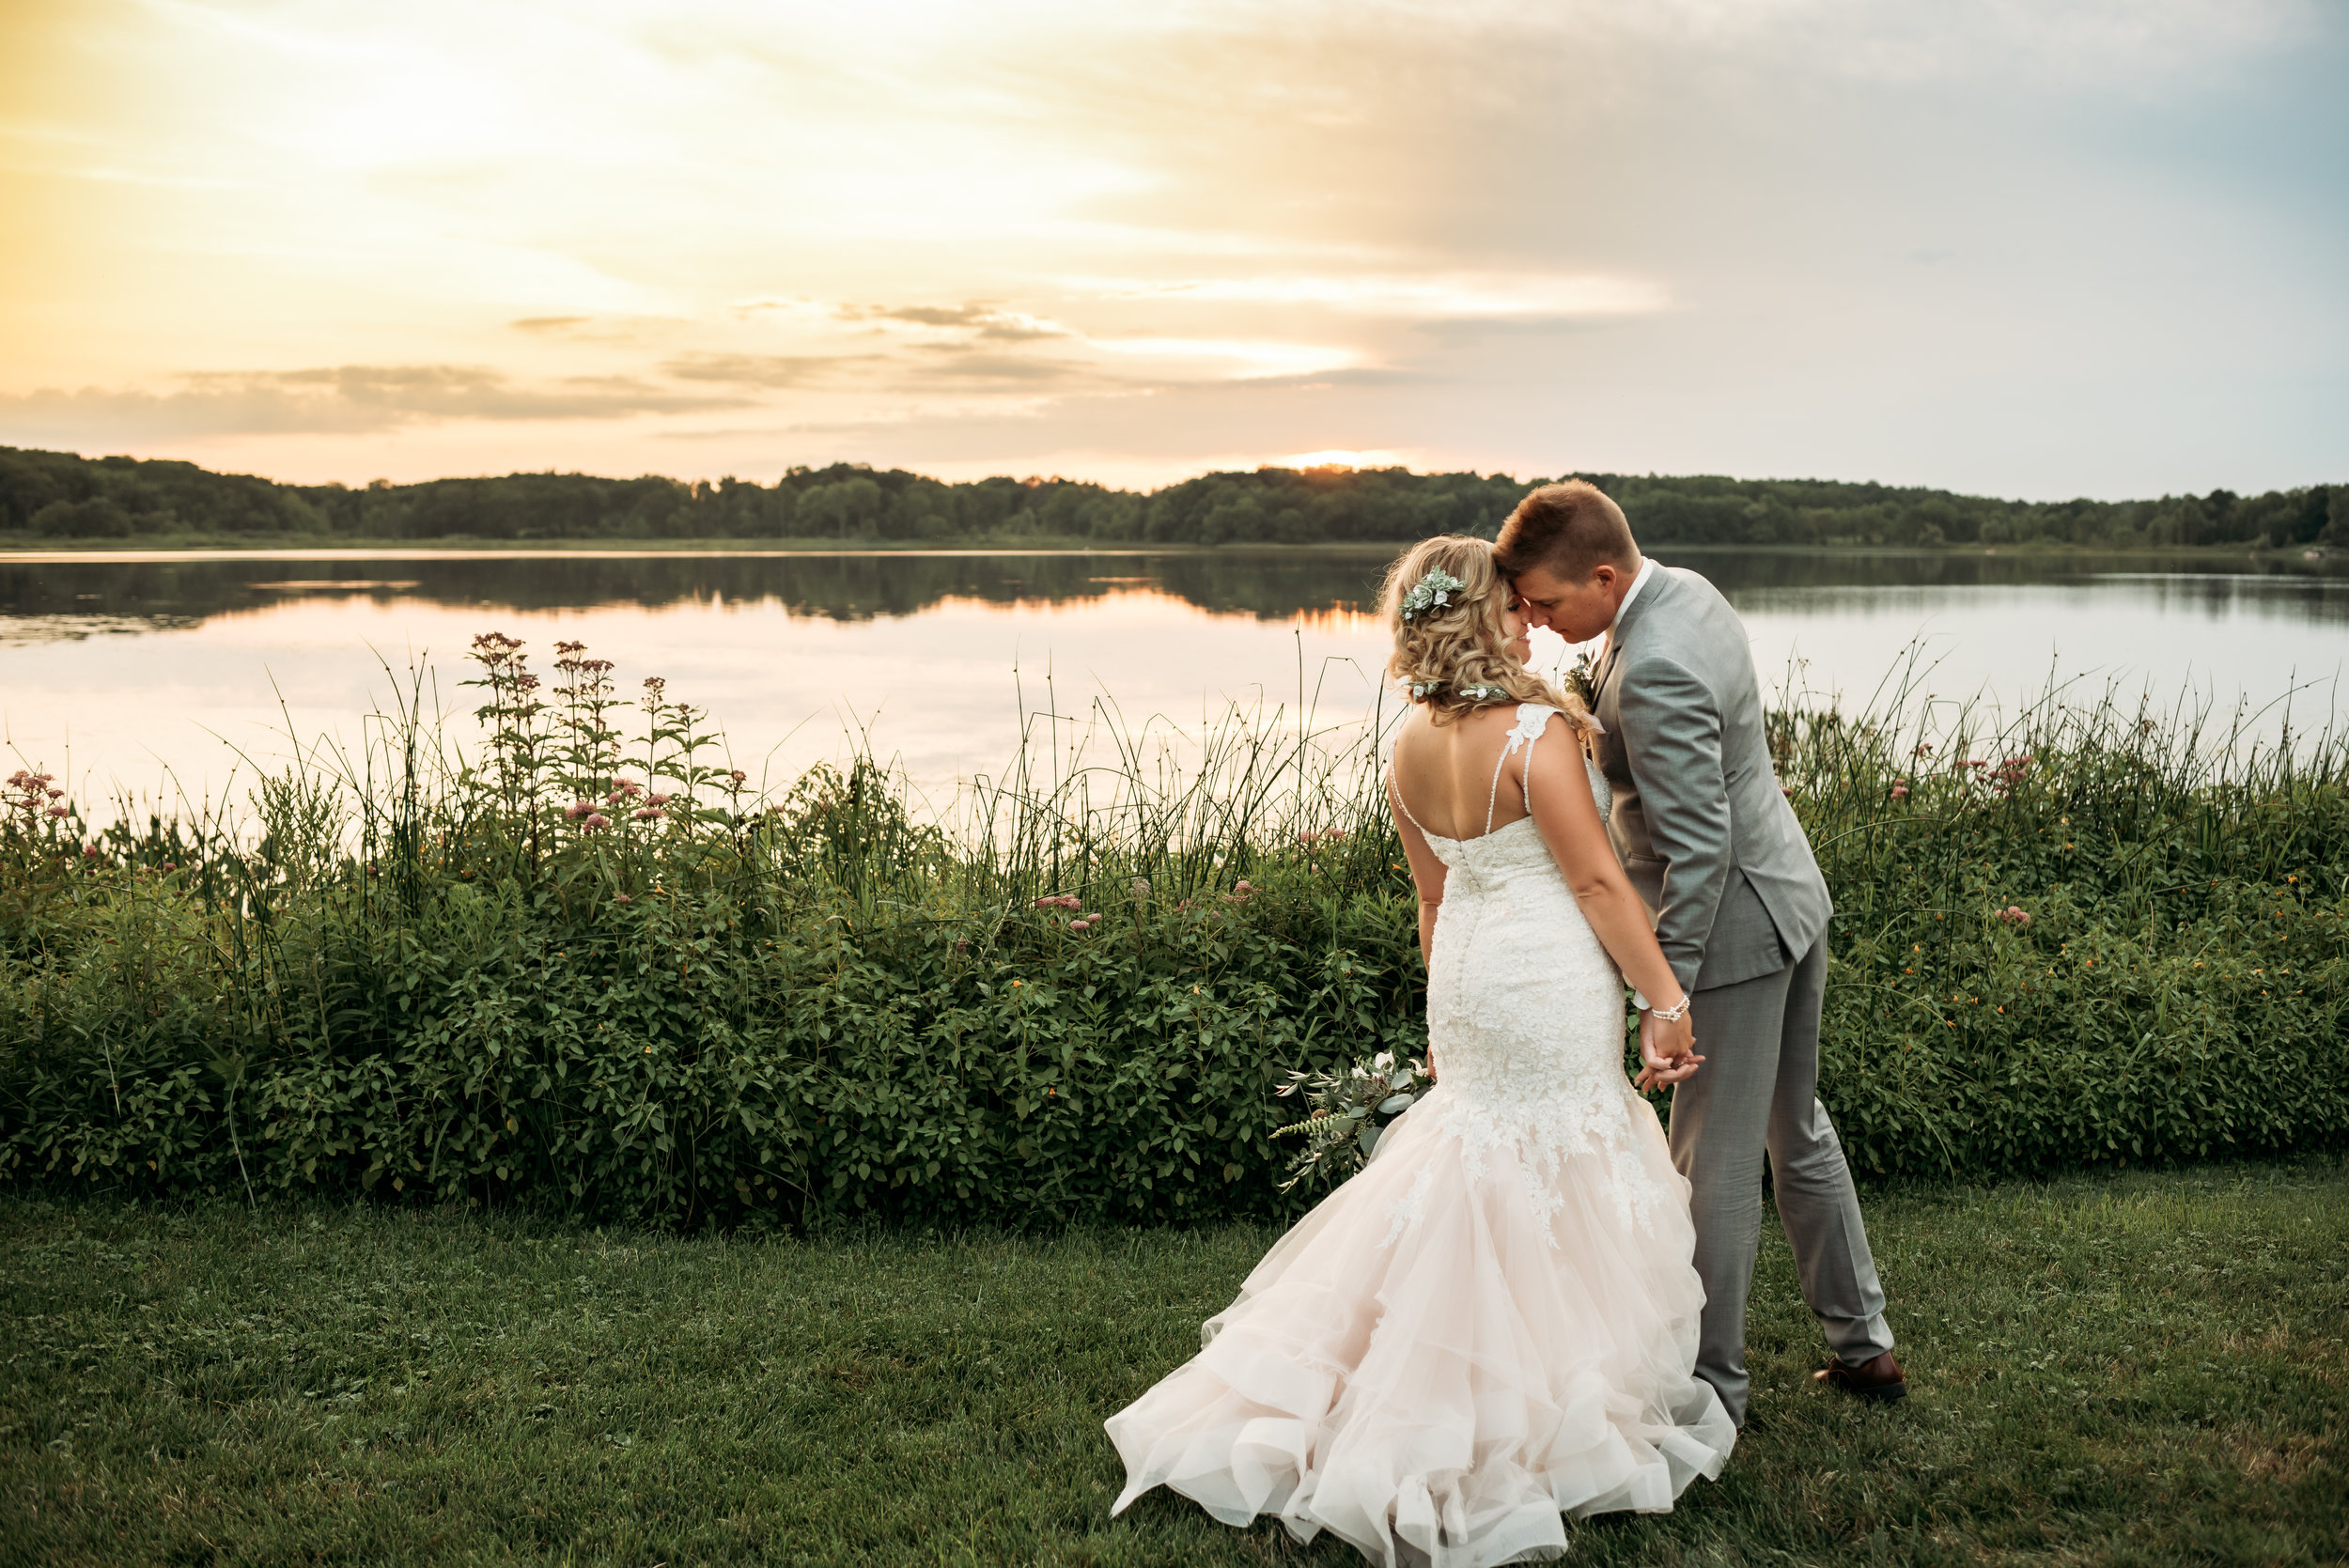 Waldenwoods Hartland Michigan Wedding Photographer | Lake Tent Wedding